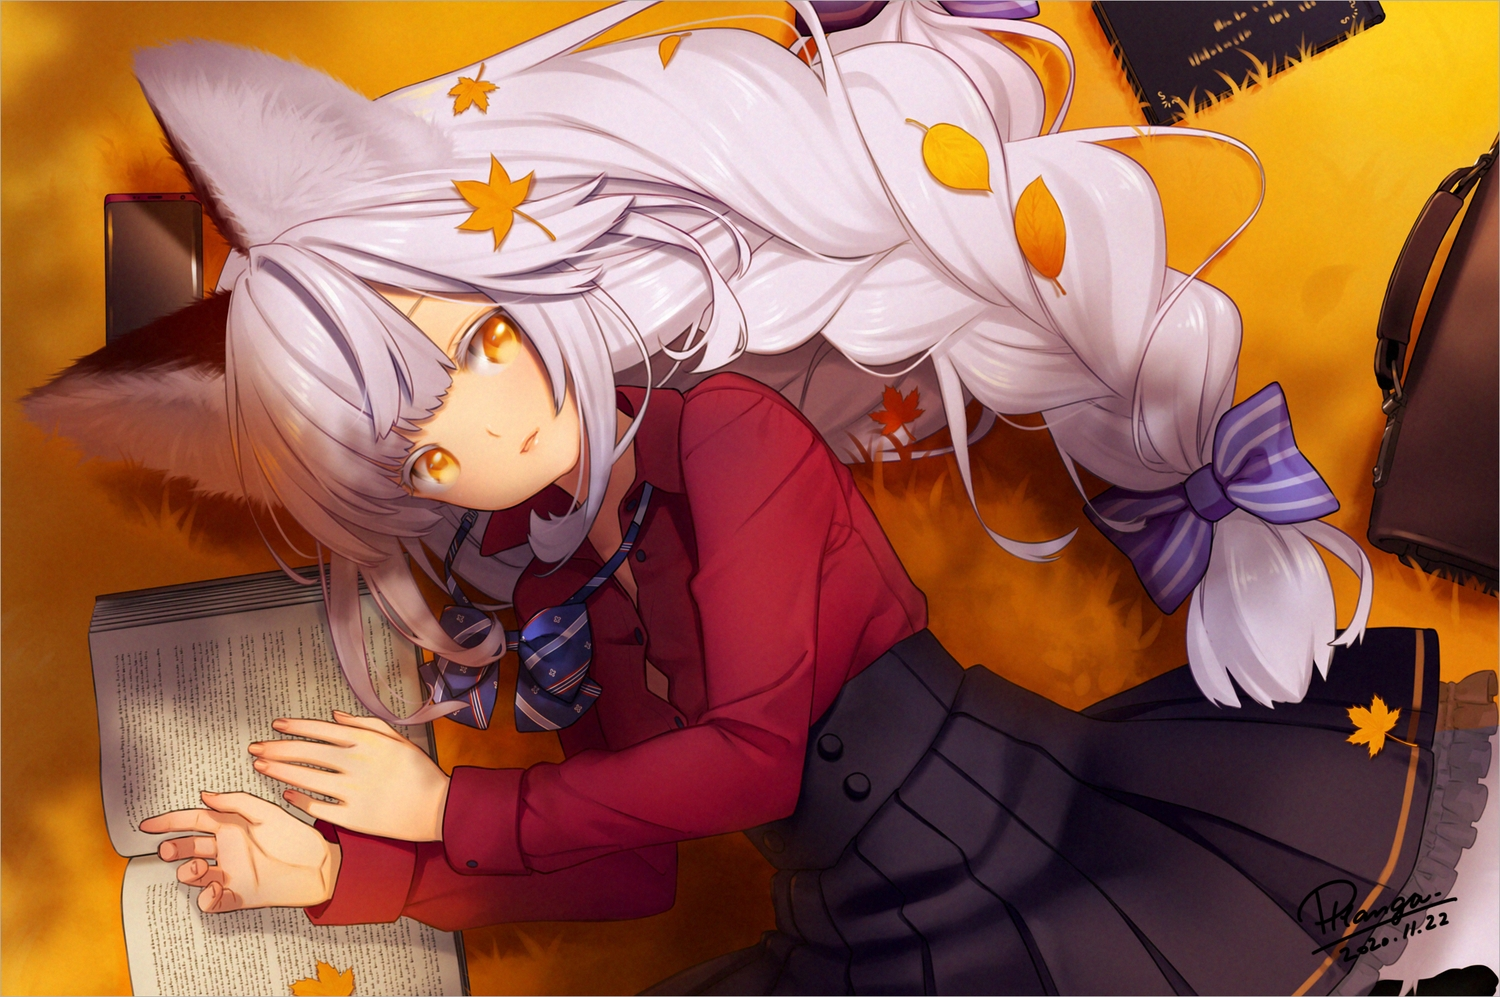 animal_ears autumn book braids close foxgirl leaves long_hair nana_mikoto orange_eyes original ponytail school_uniform shirt skirt white_hair